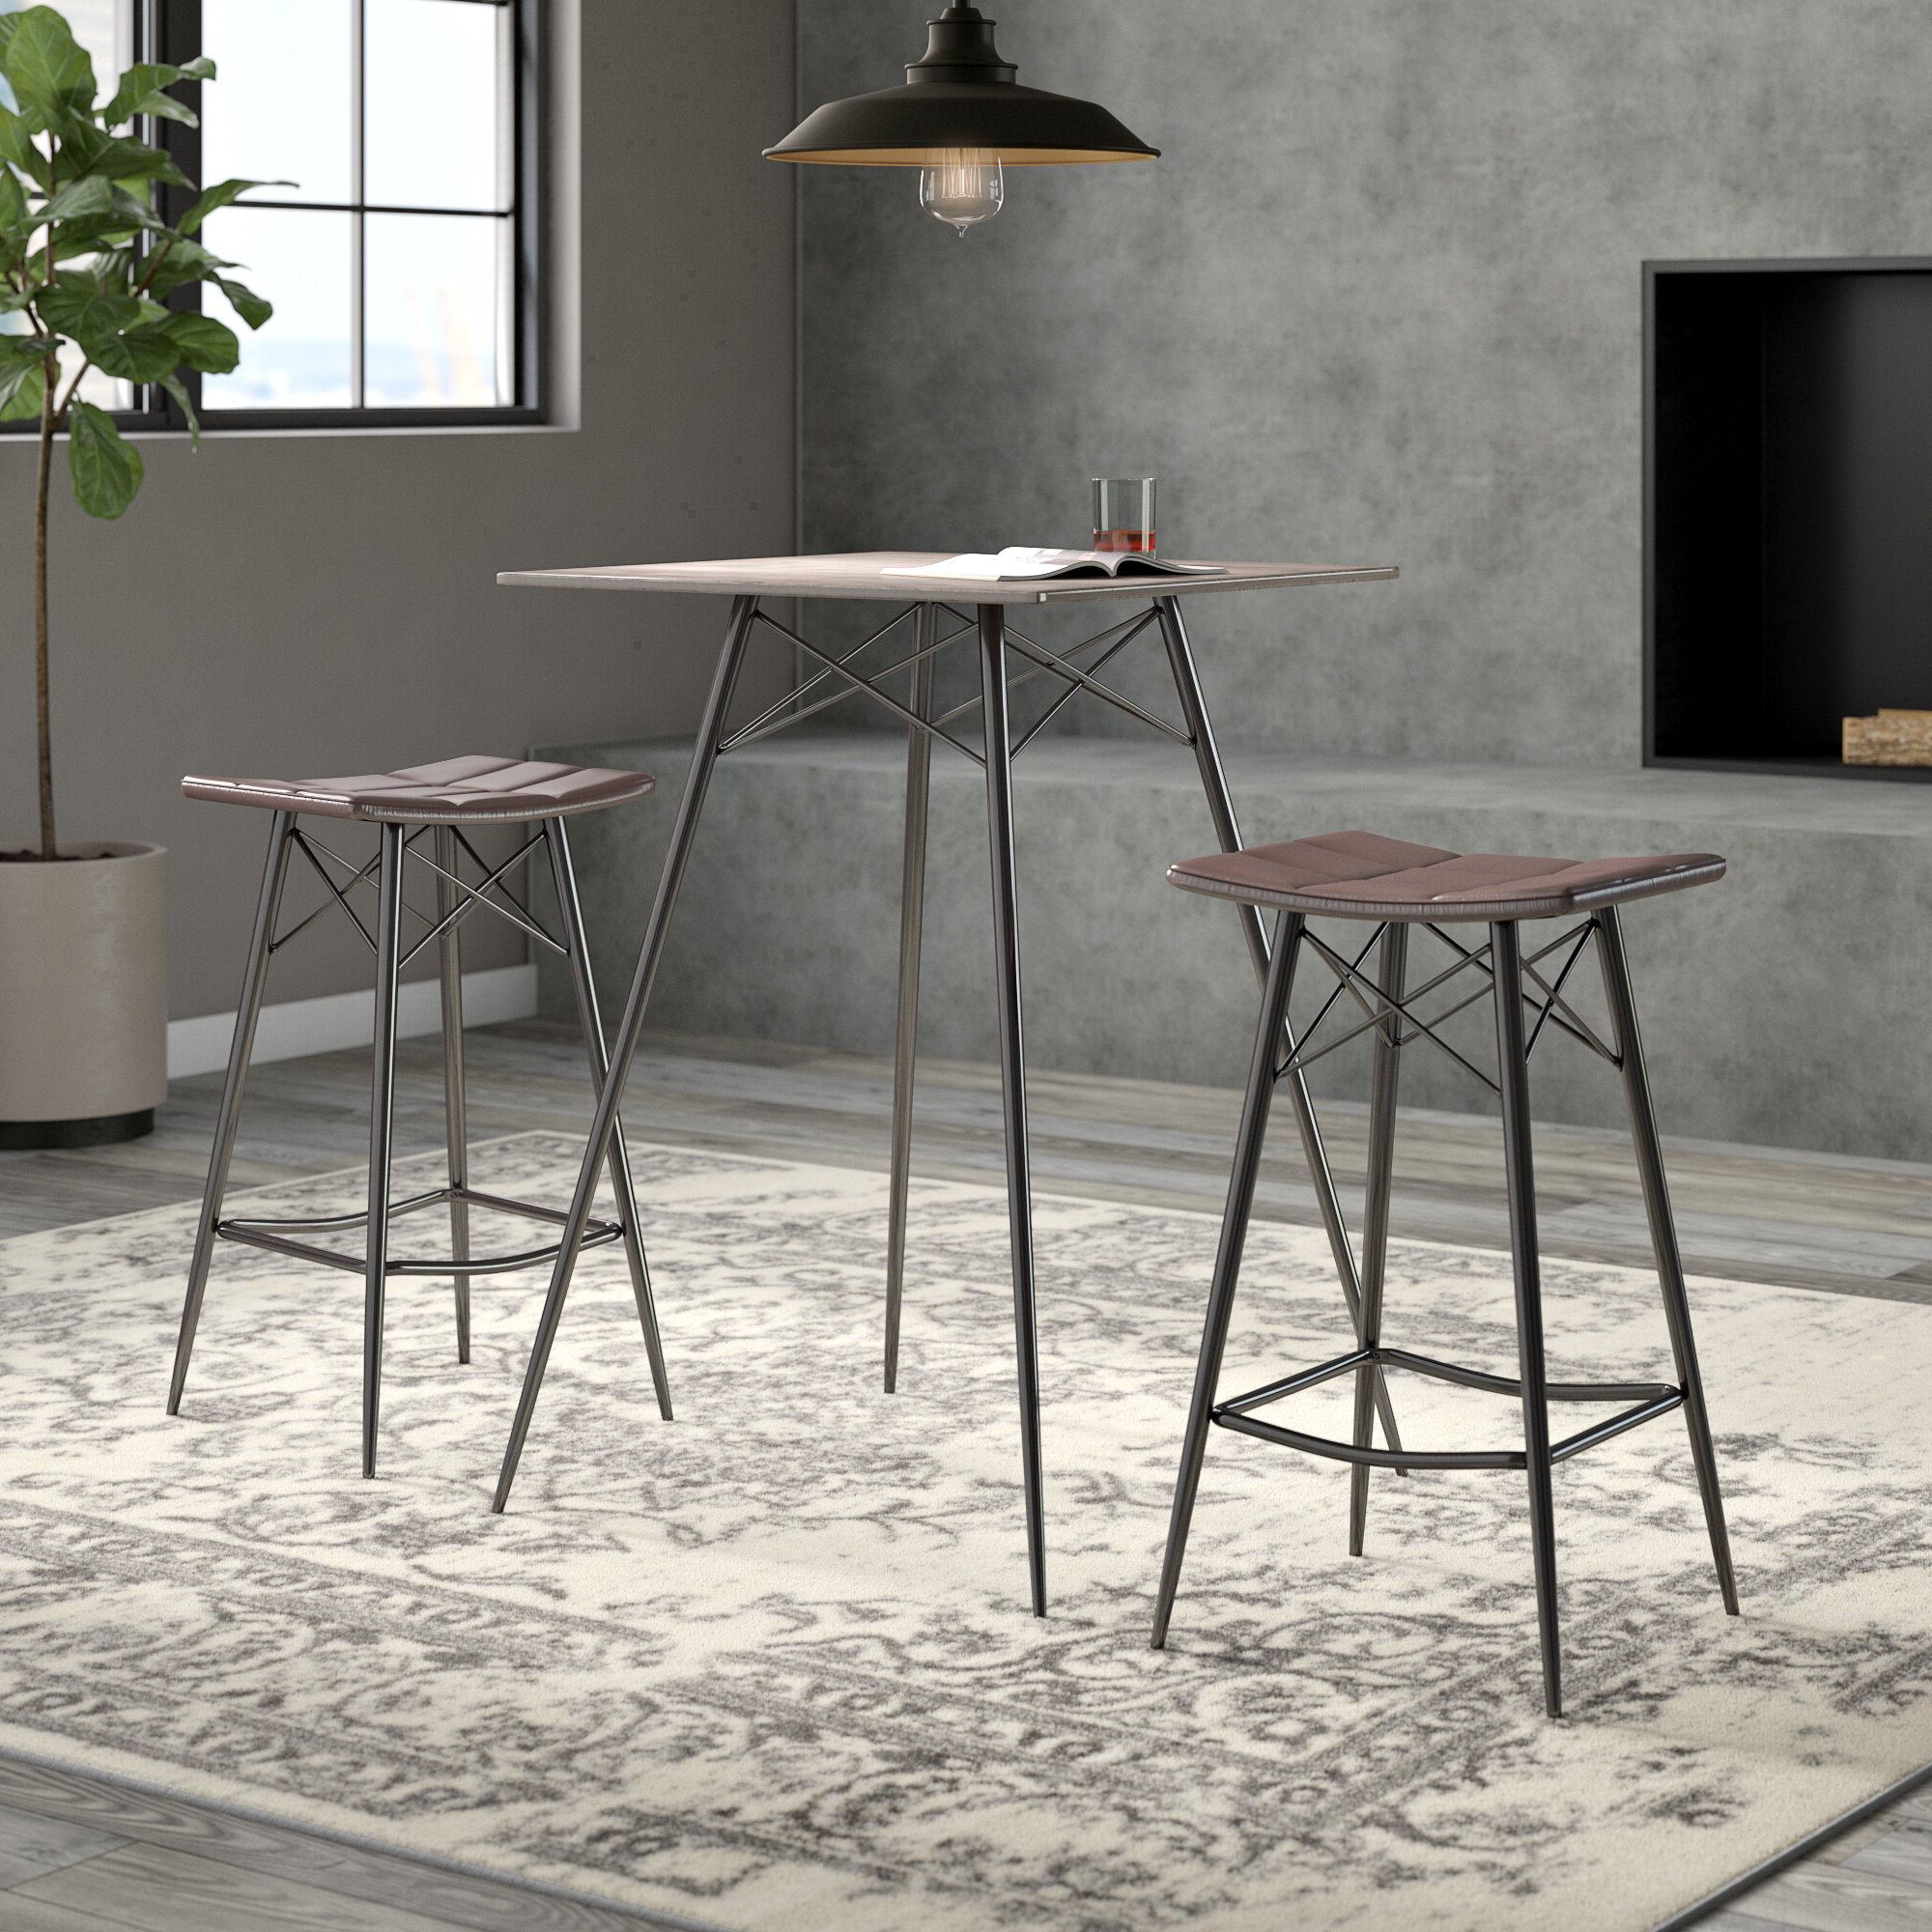 Wayfair Inside Latest Honoria 3 Piece Dining Sets (View 5 of 25)